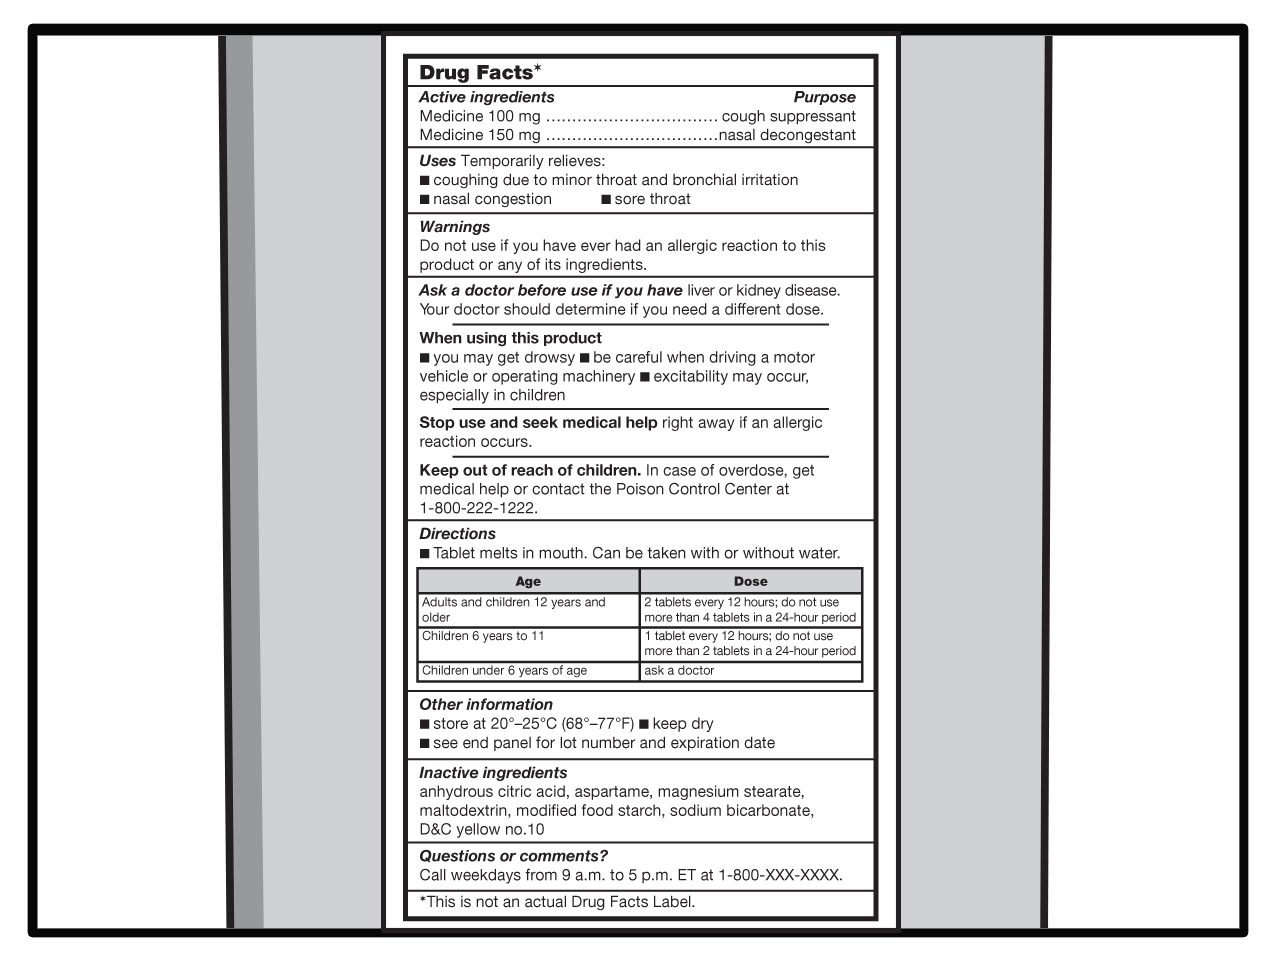 Worksheet Ideas Lesson Reading And Understanding The